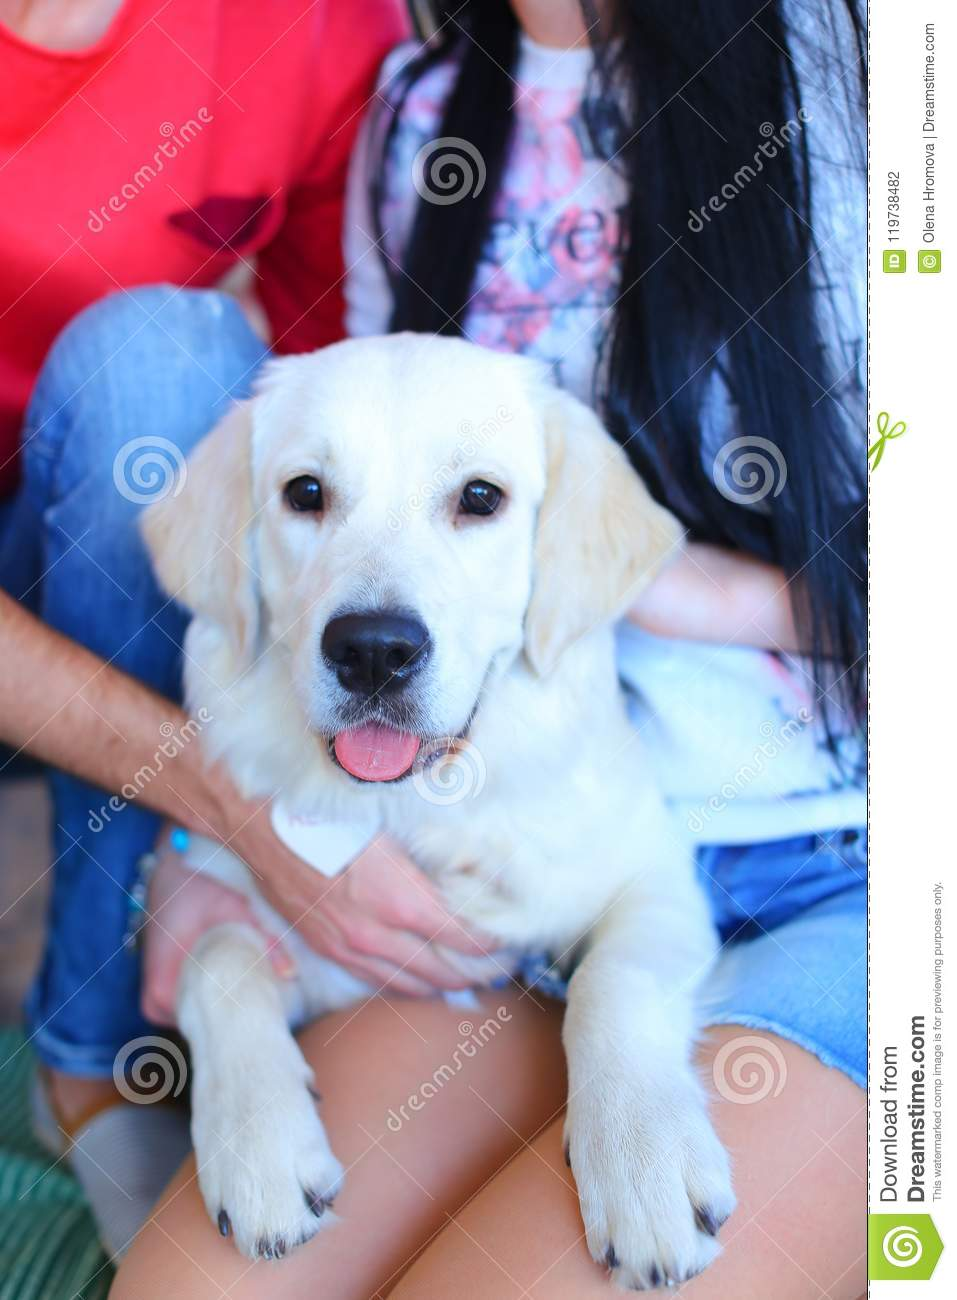 White dog sitting on happy woman and man knees.